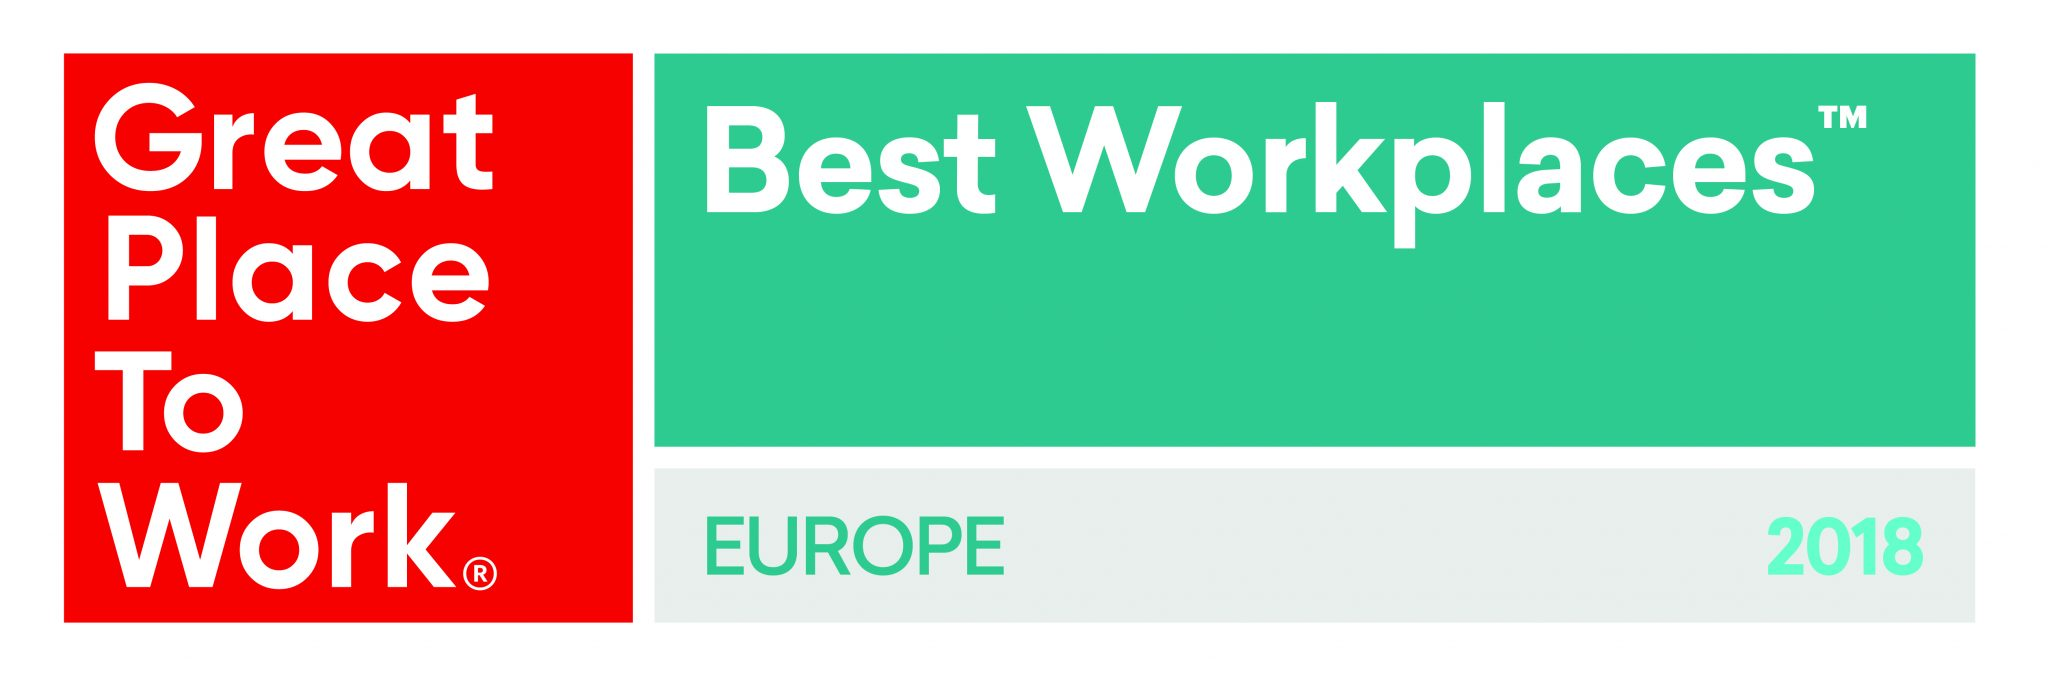 Best Workplace in Europe